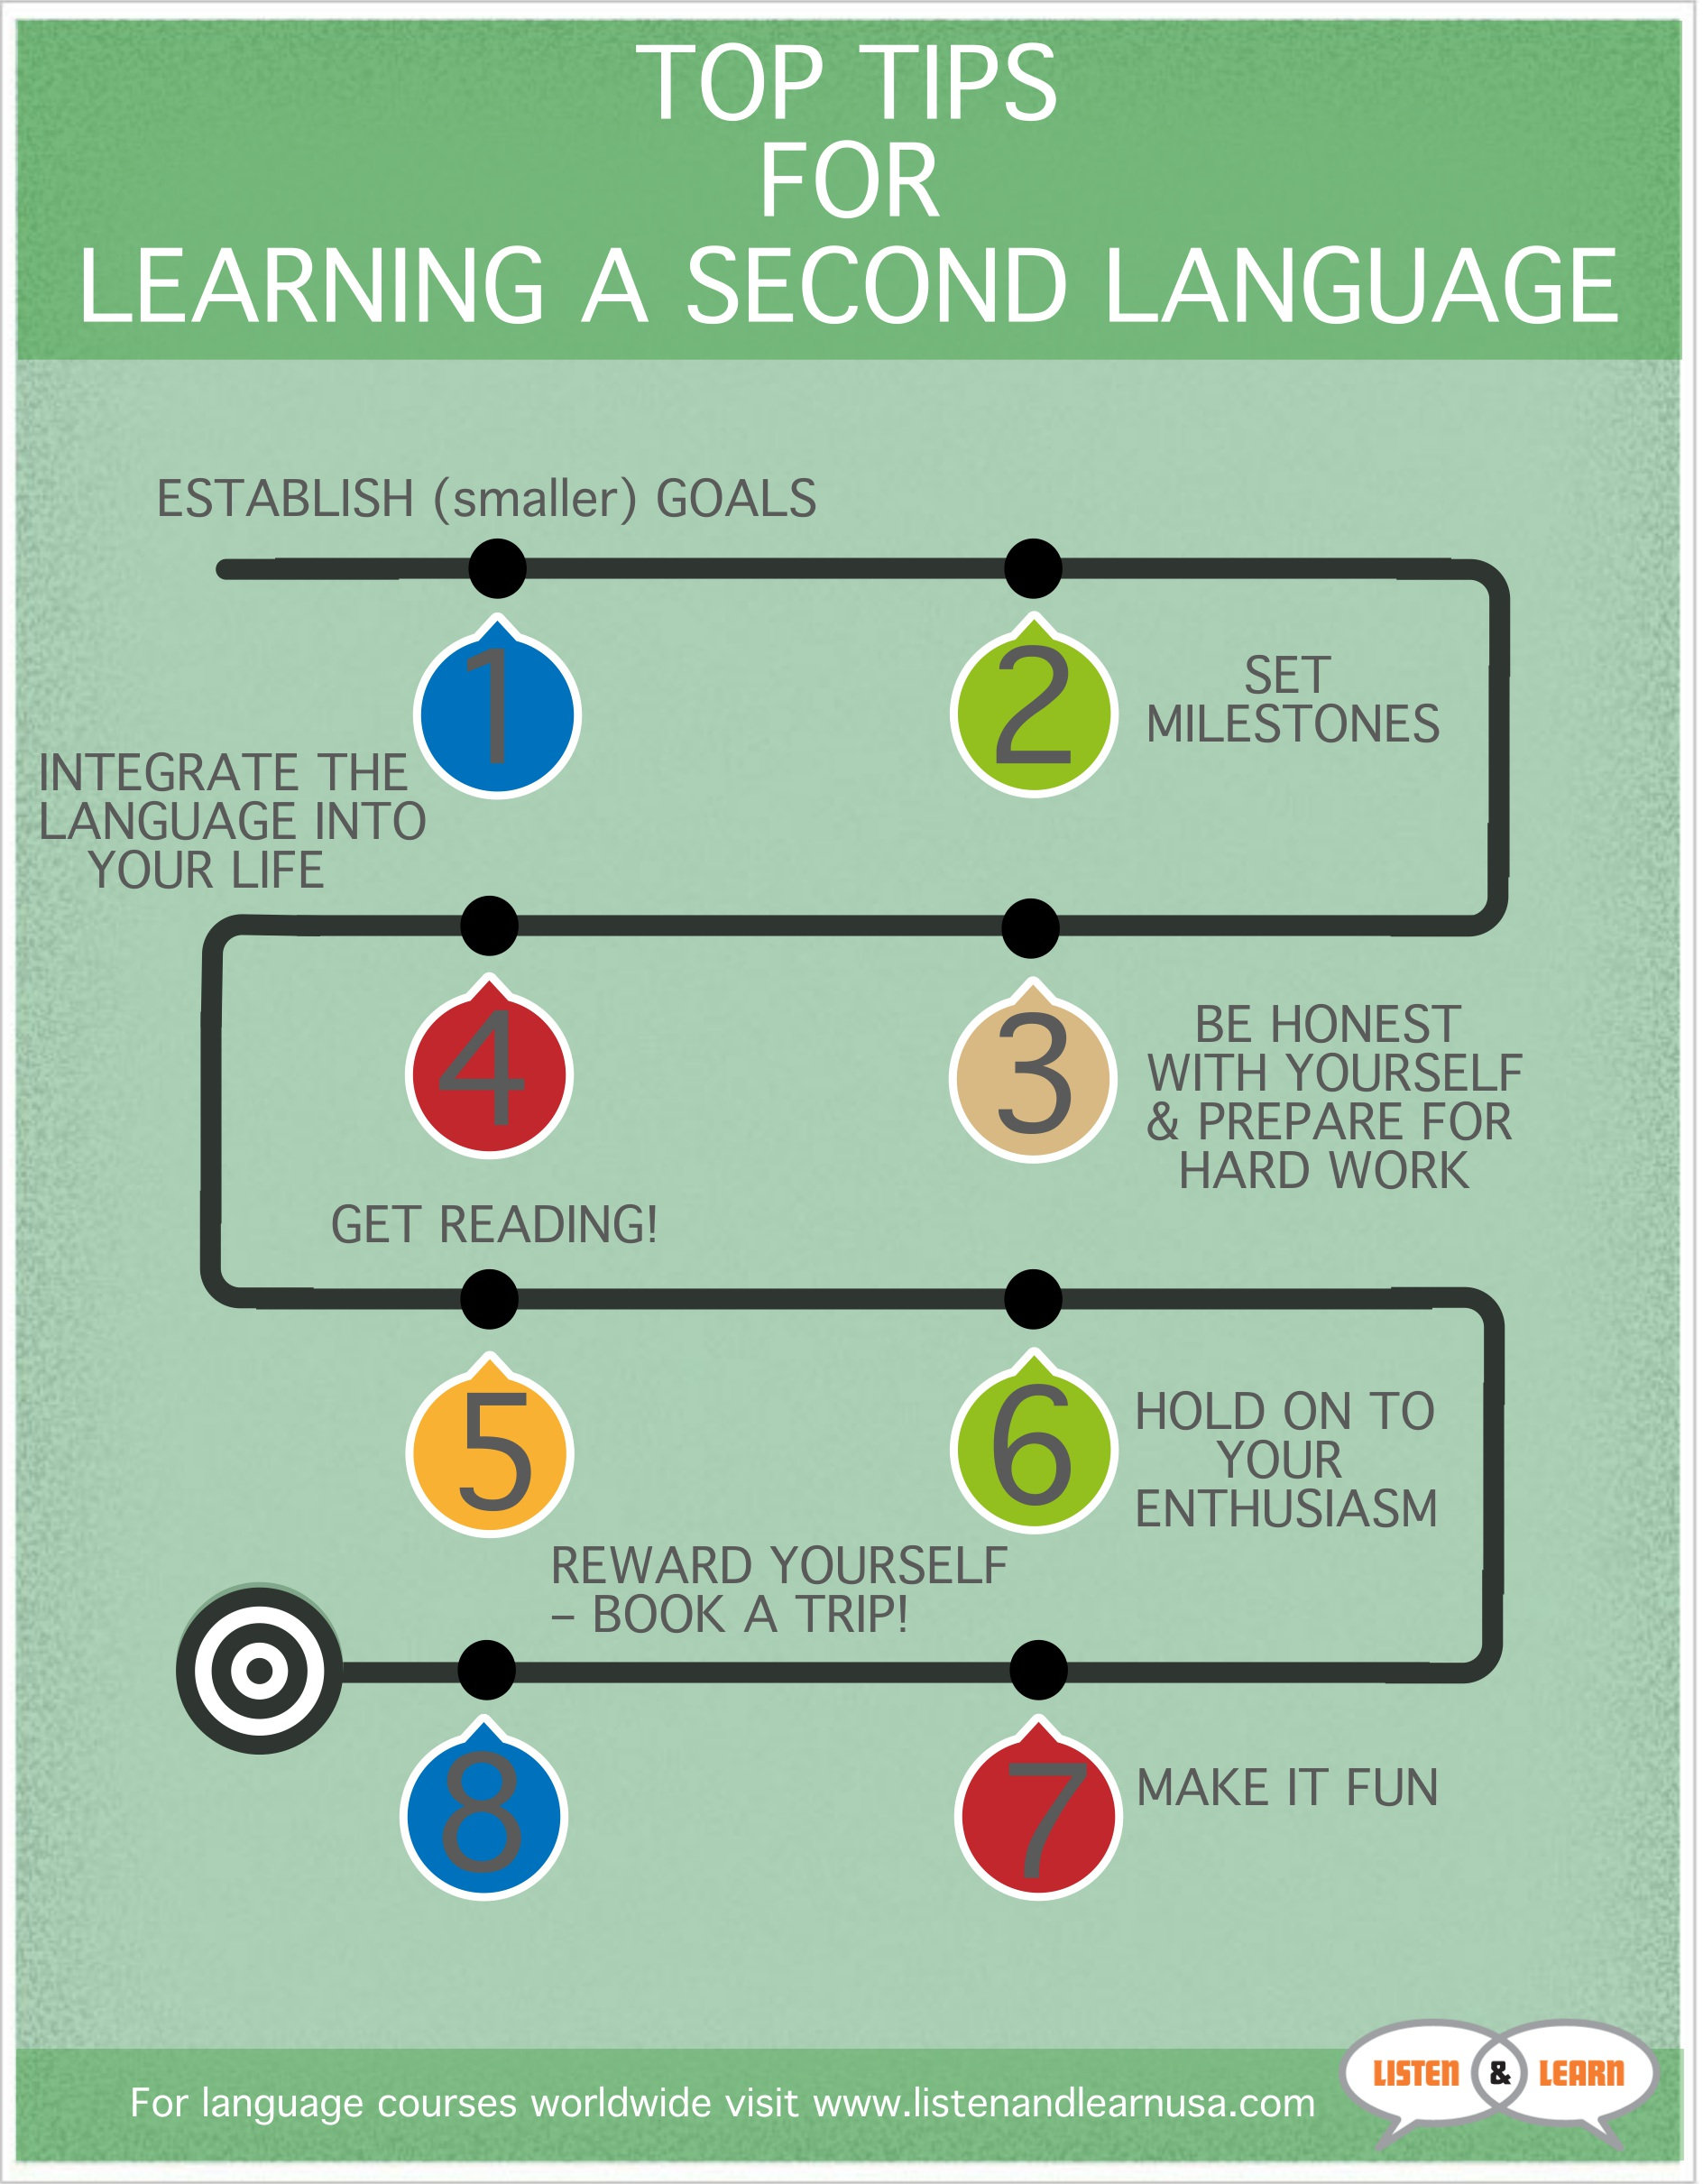 8 Top Tips For Learning A Second Language